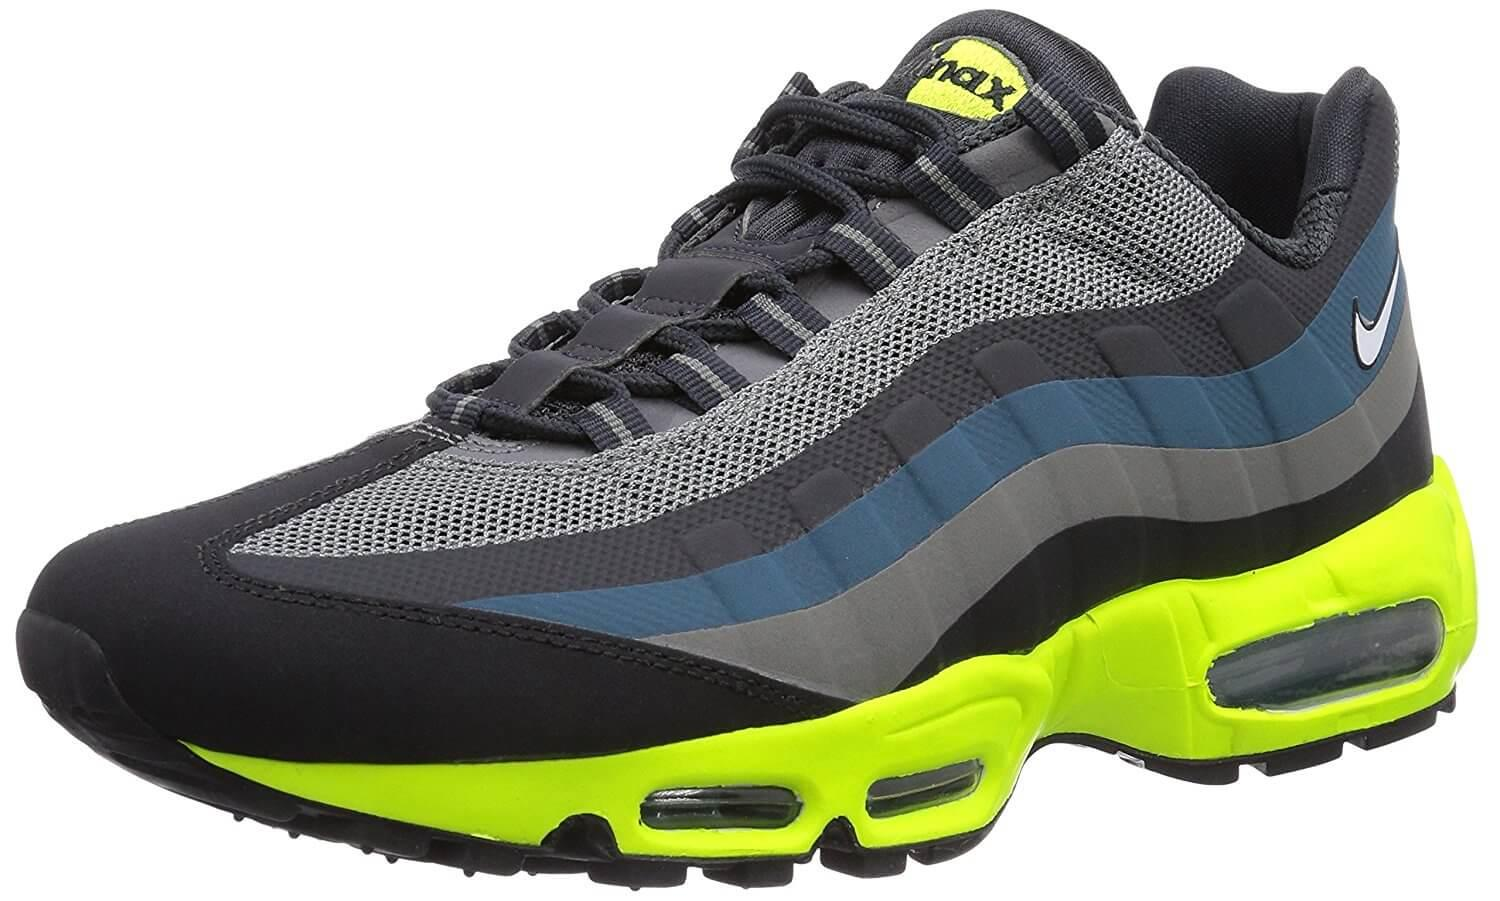 3cf149b4421 Nike Air Max 95 Reviewed - To Buy or Not in May 2019